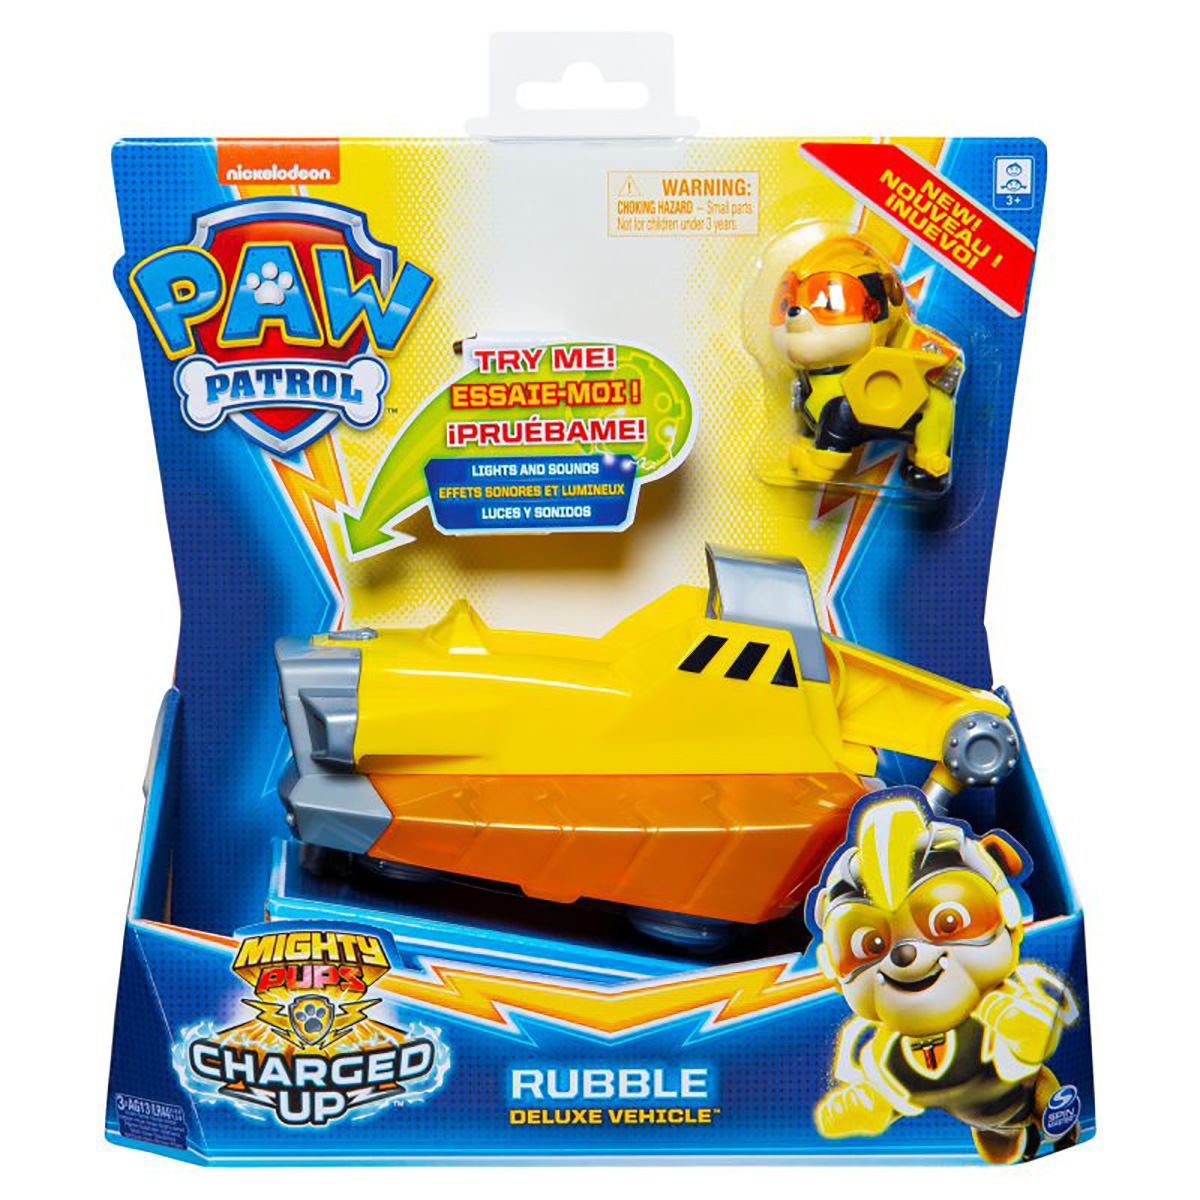 Figurina cu vehicul Paw Patrol Deluxe Vehicle Mighty Pups, Rubble 20121274